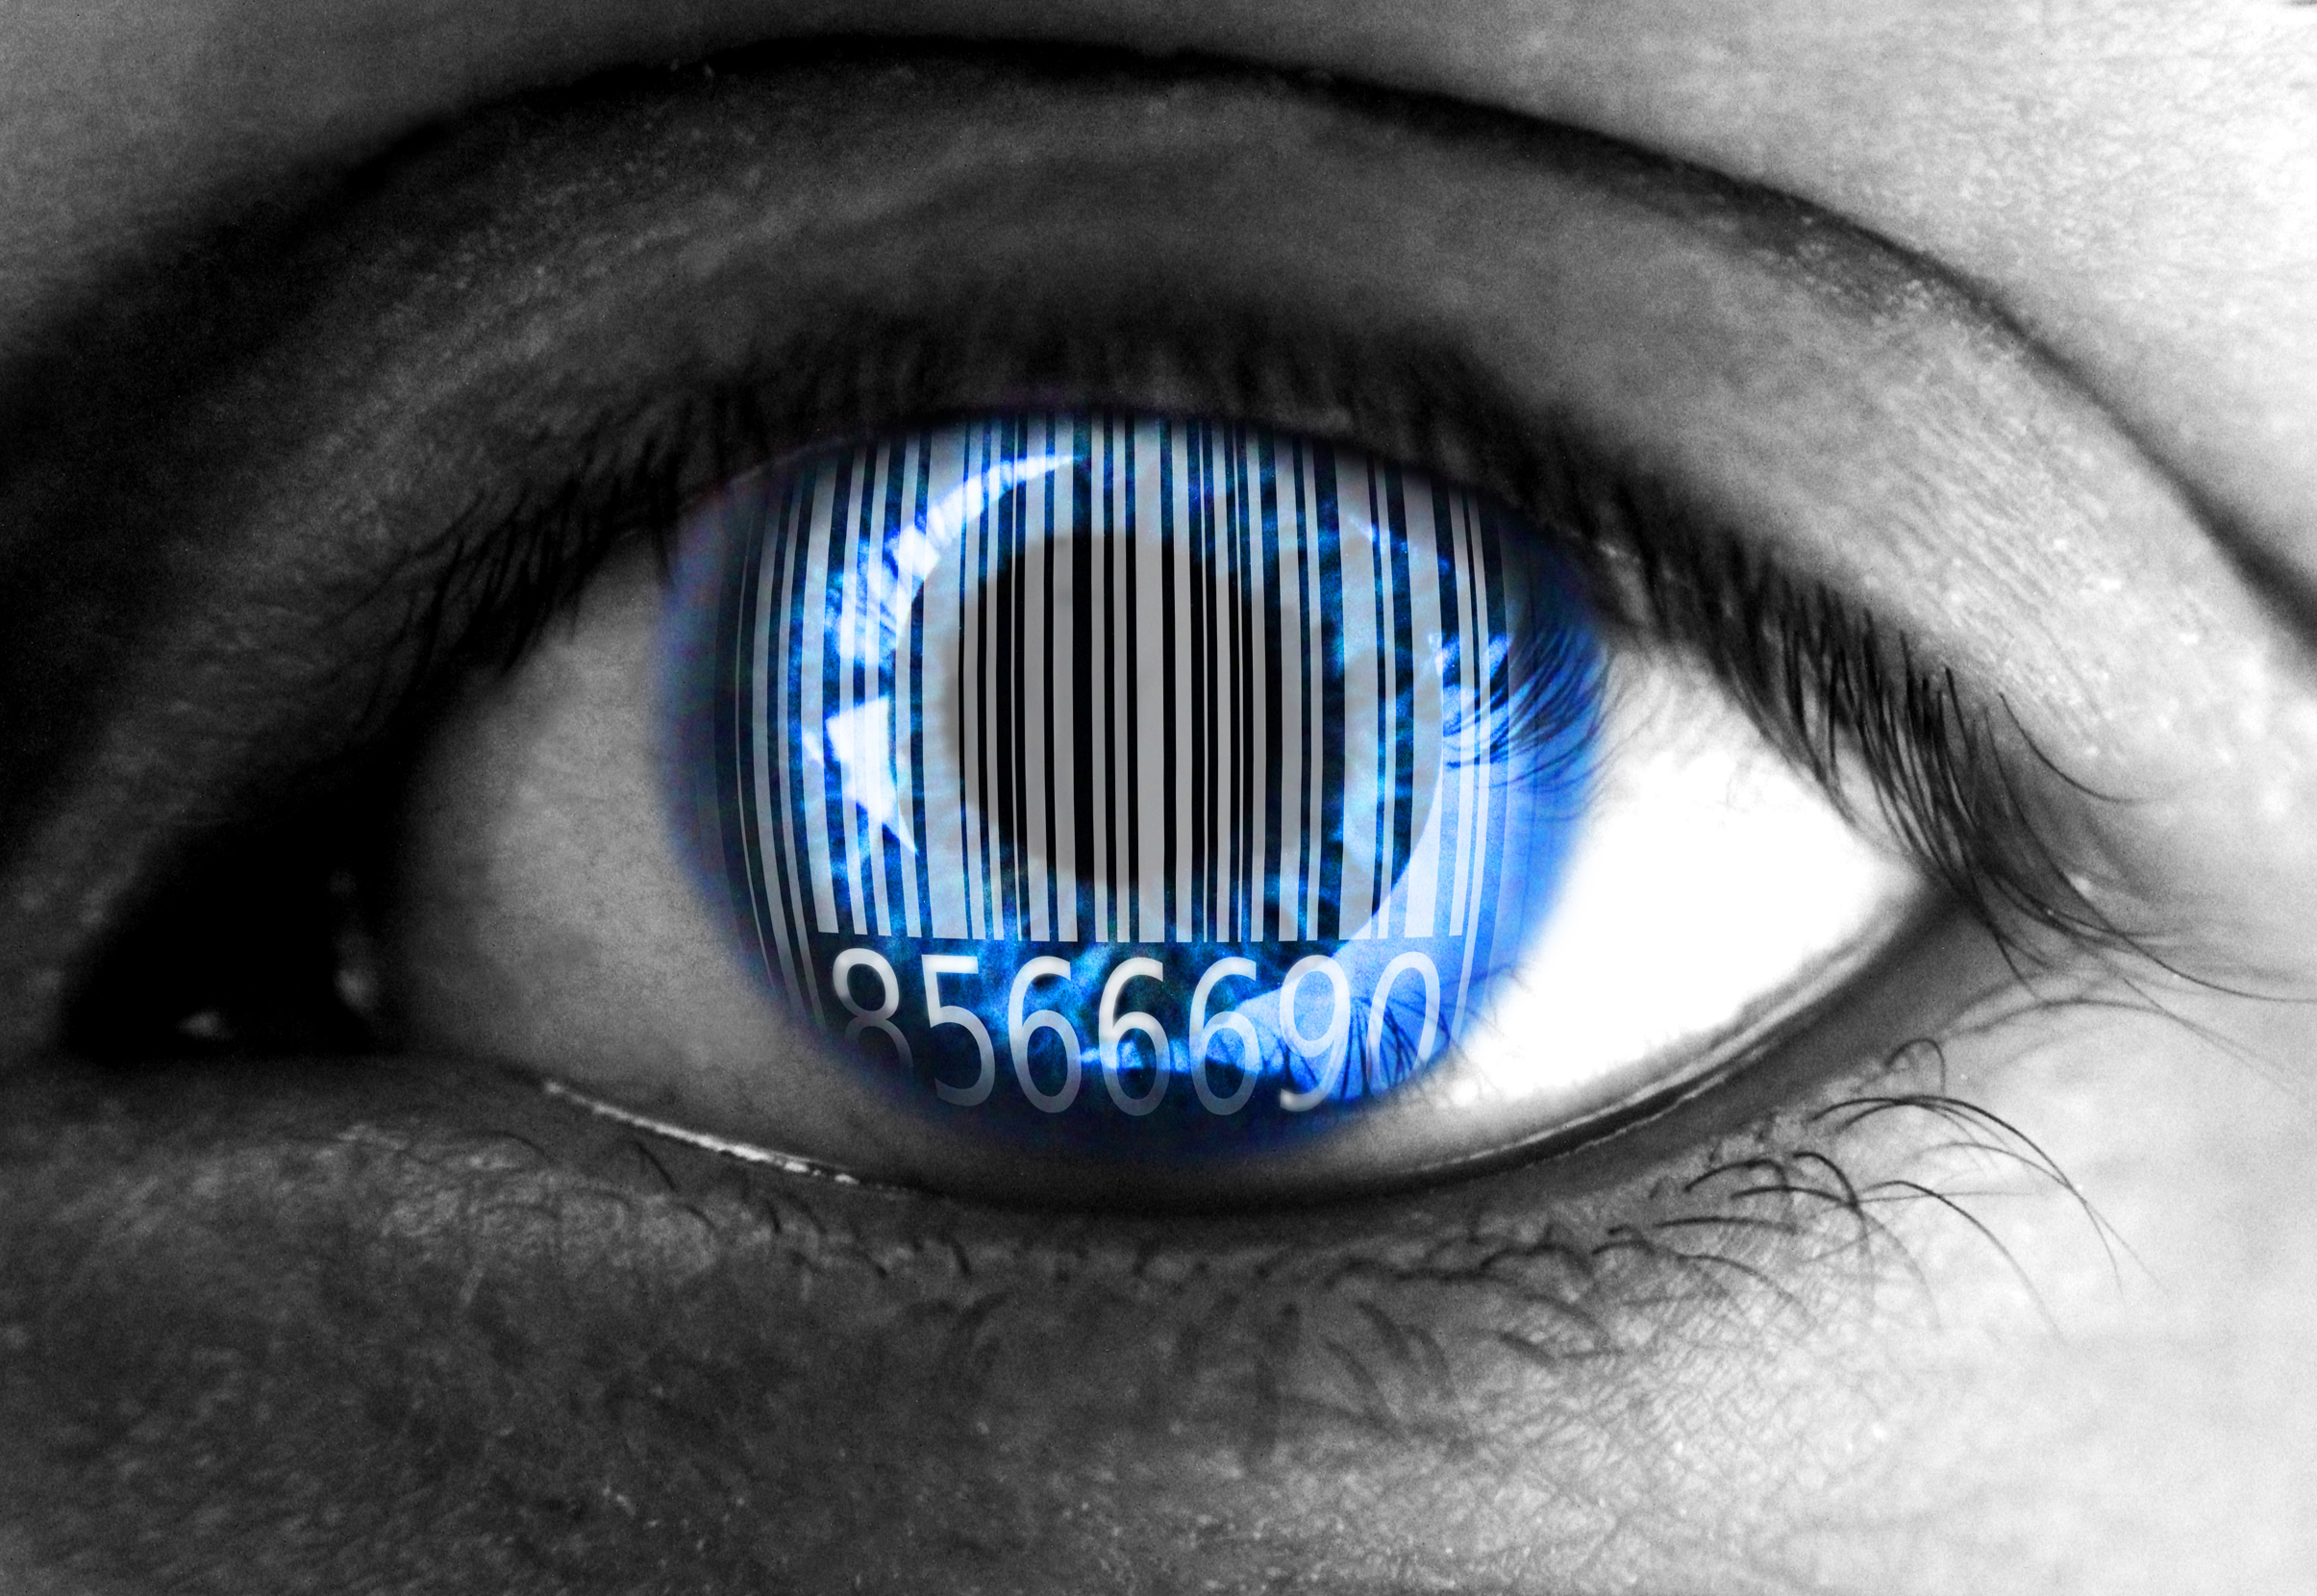 Human eye with barcode - Big data concept, 1, Numbers, Sale, Pupil, HQ Photo